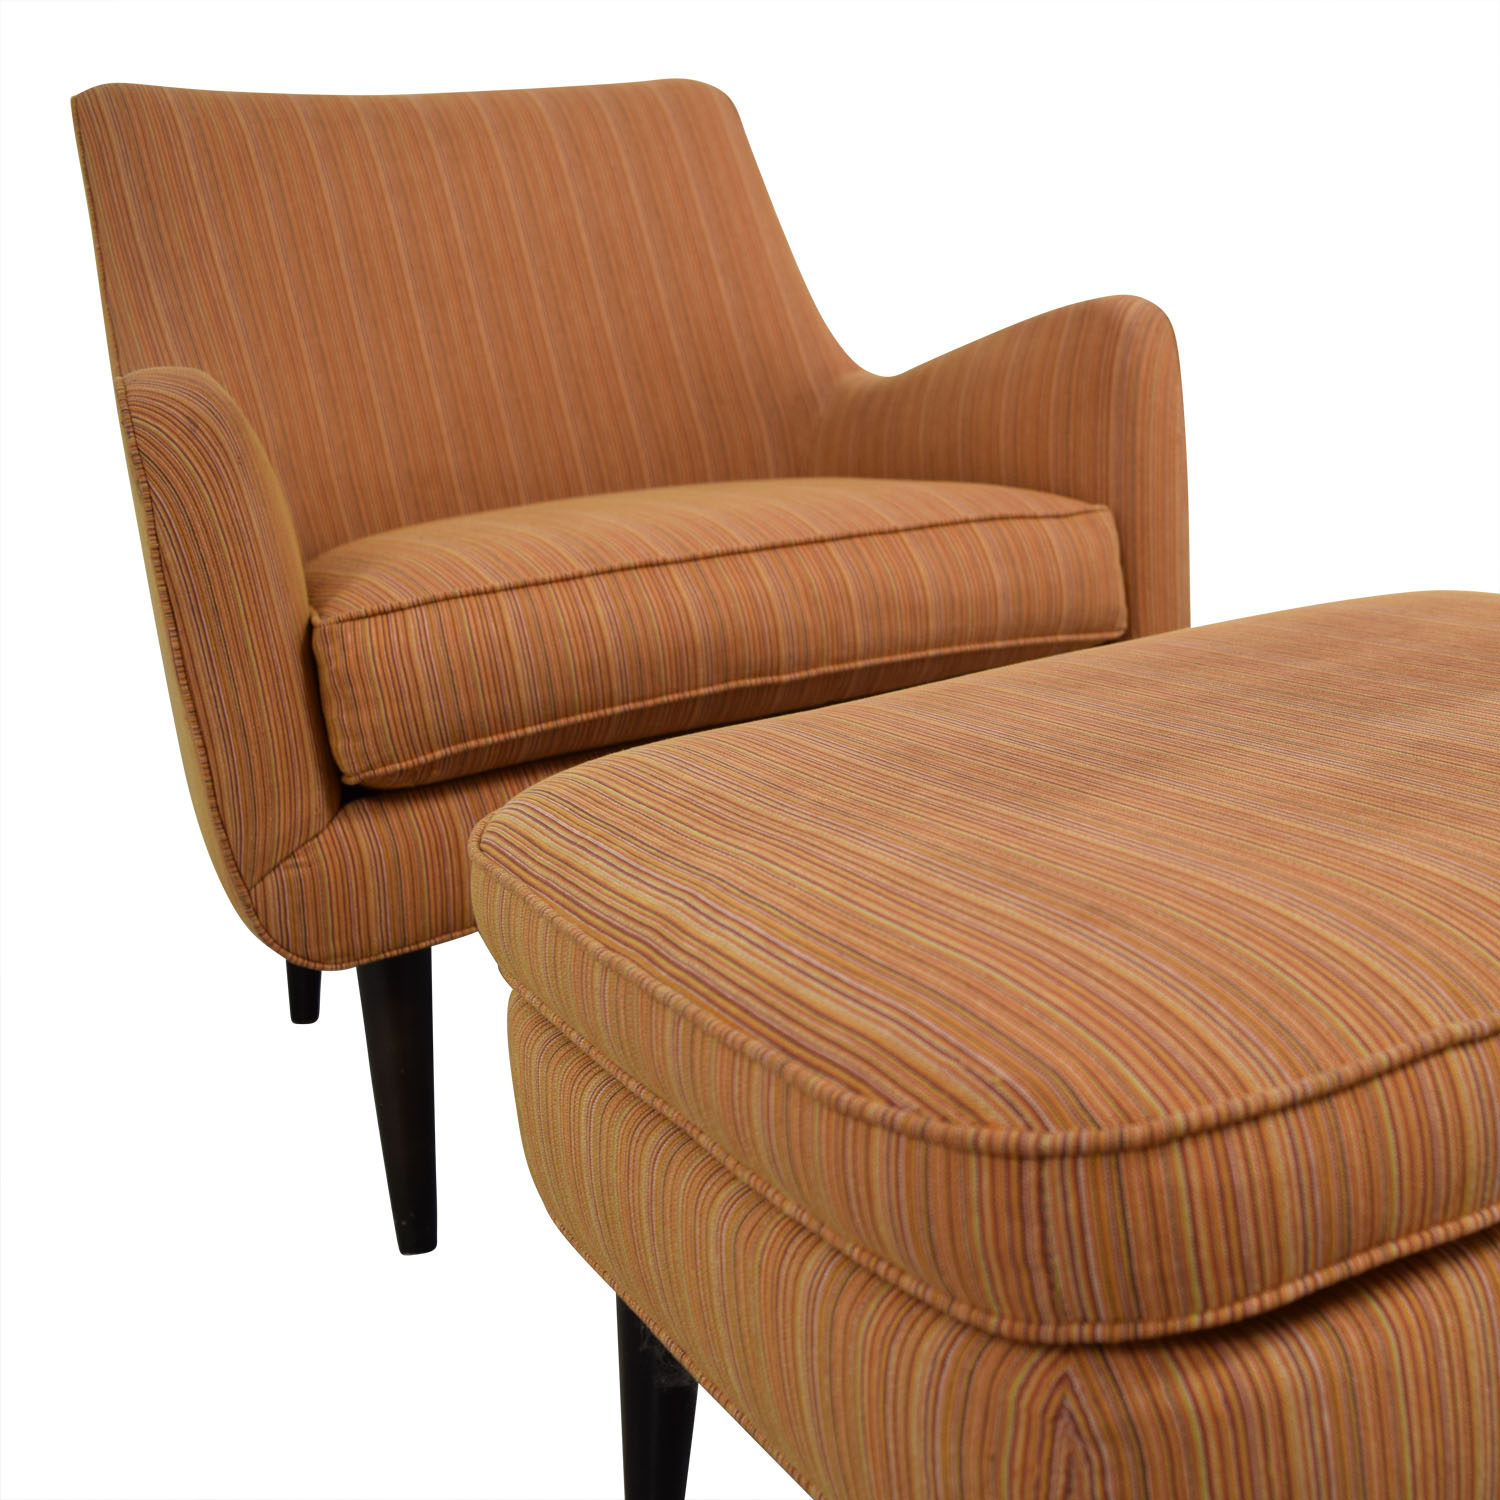 room and board chair slingback patio chairs repair 86 off orange striped lounge